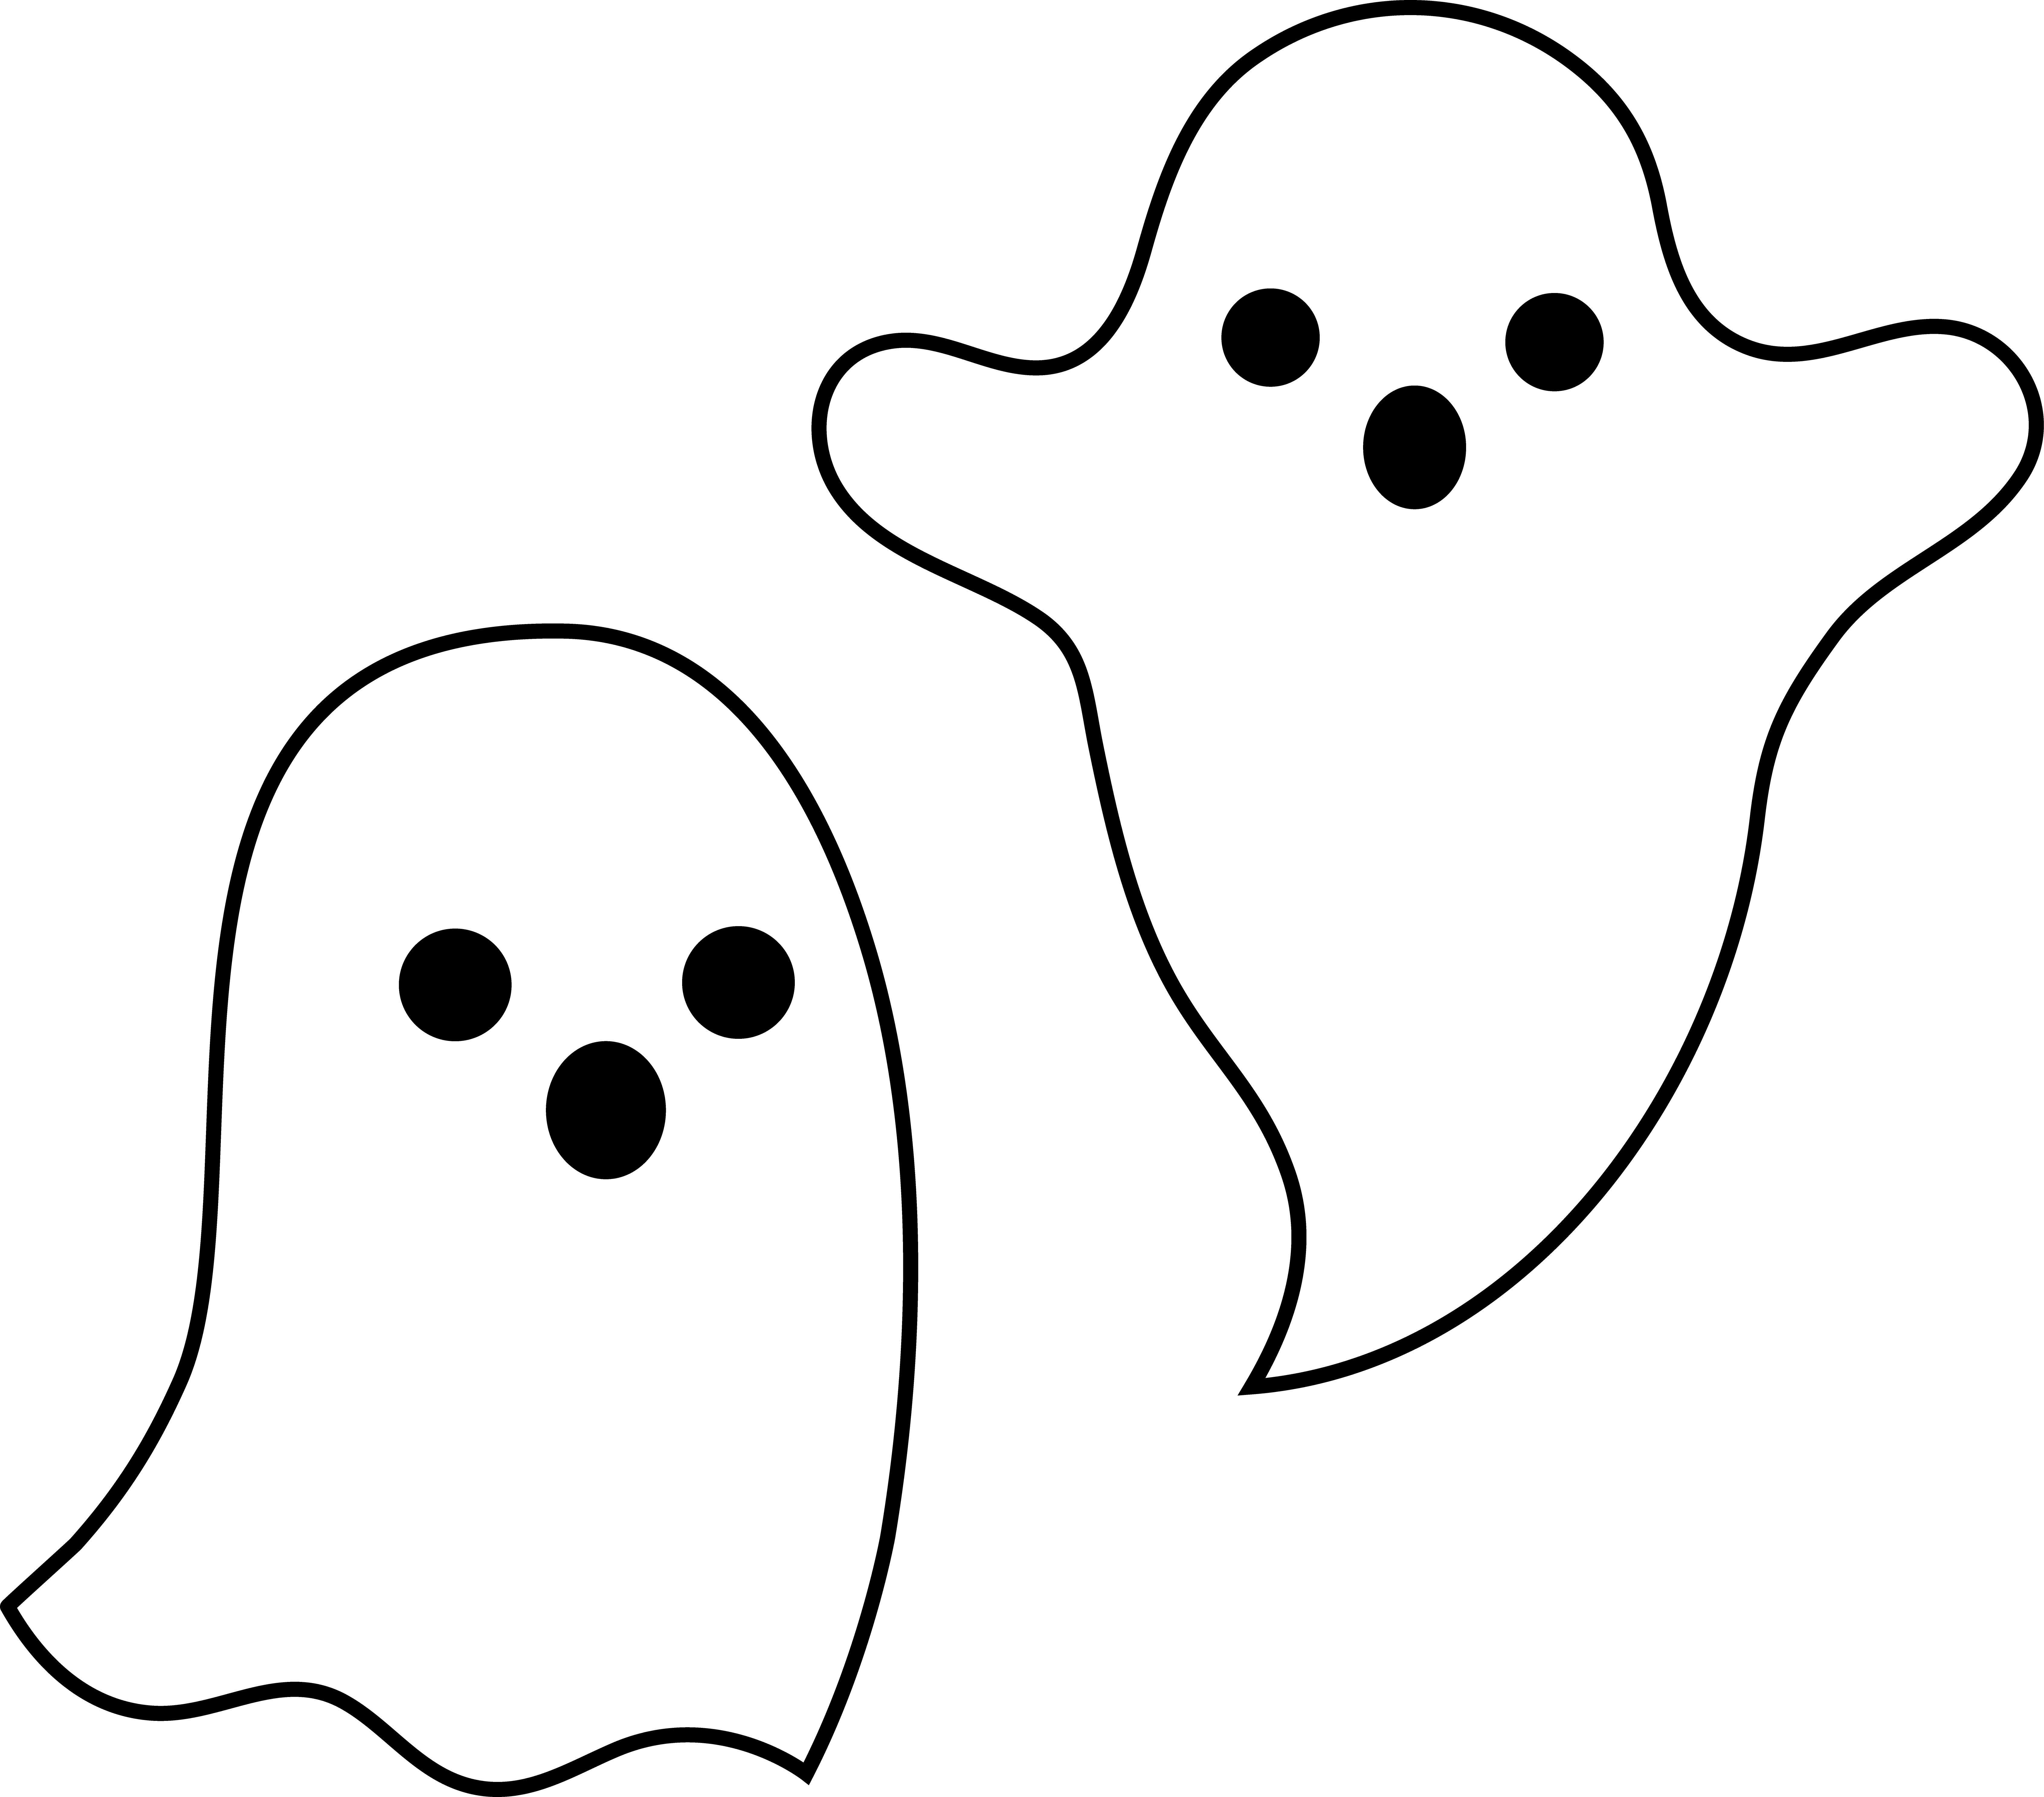 Ghost Png Image Halloween Ghosts Halloween Templates Ghost Template